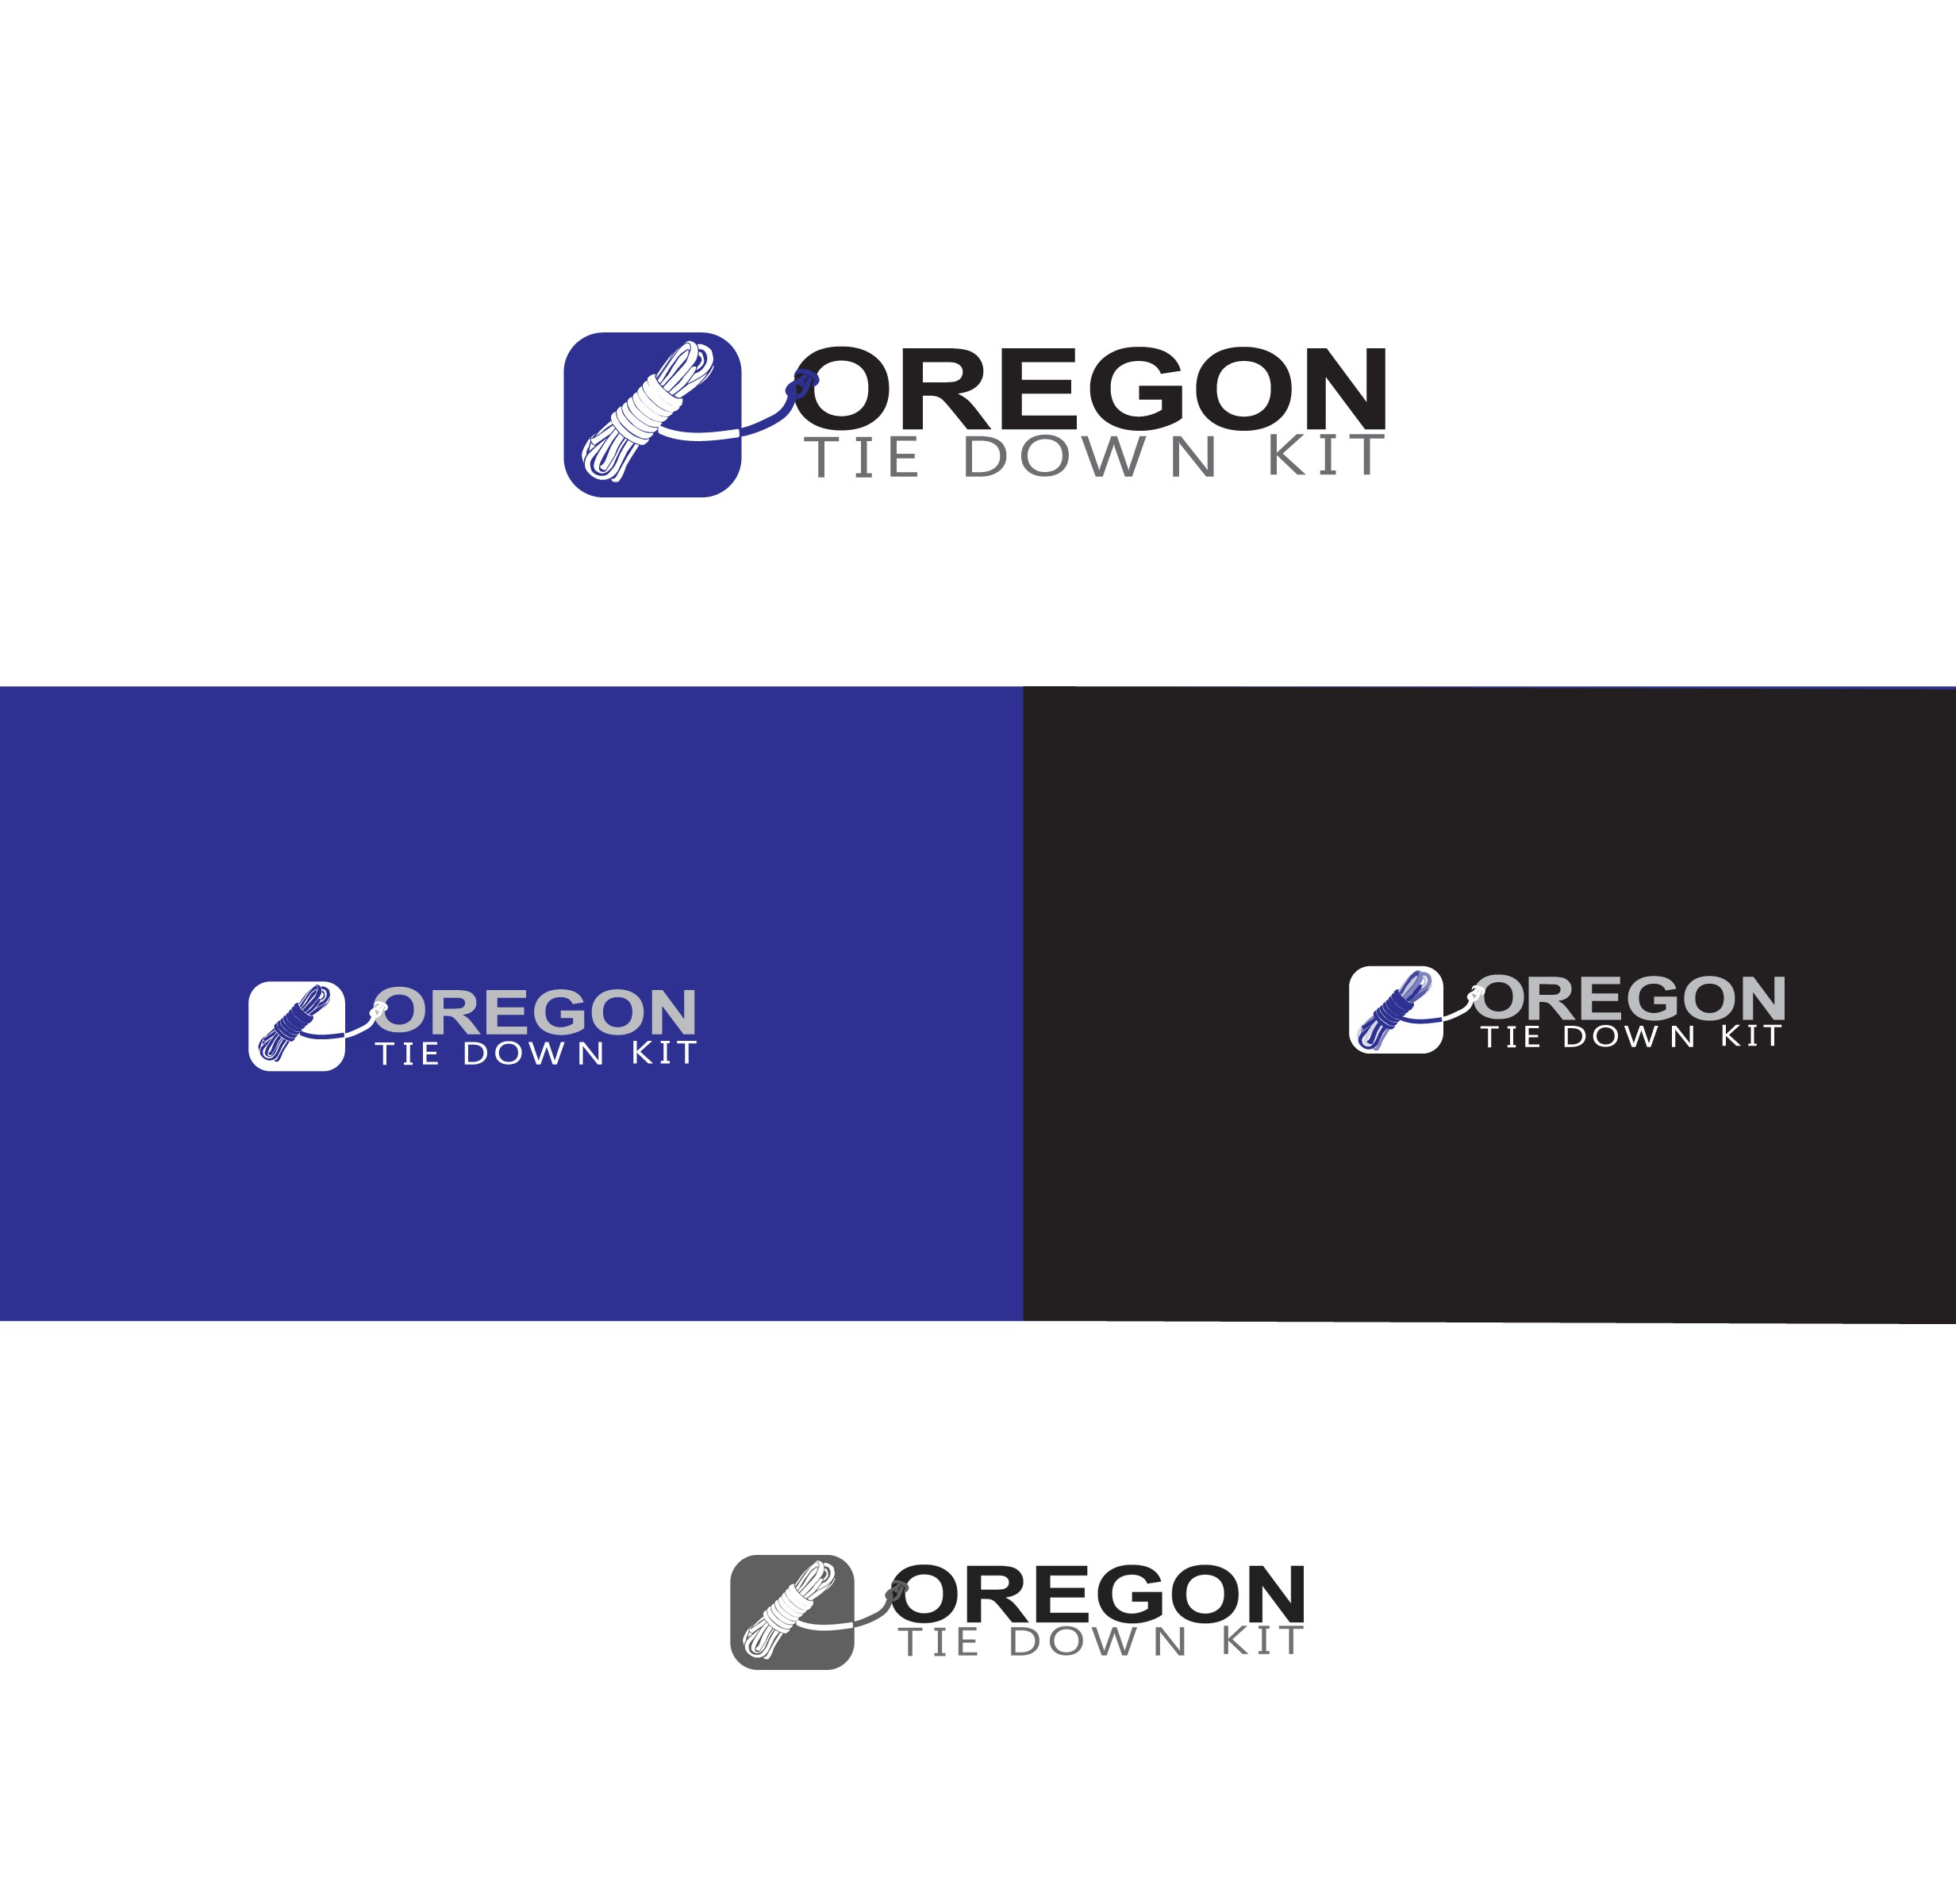 Create a logo for a startup outdoor accessory company.